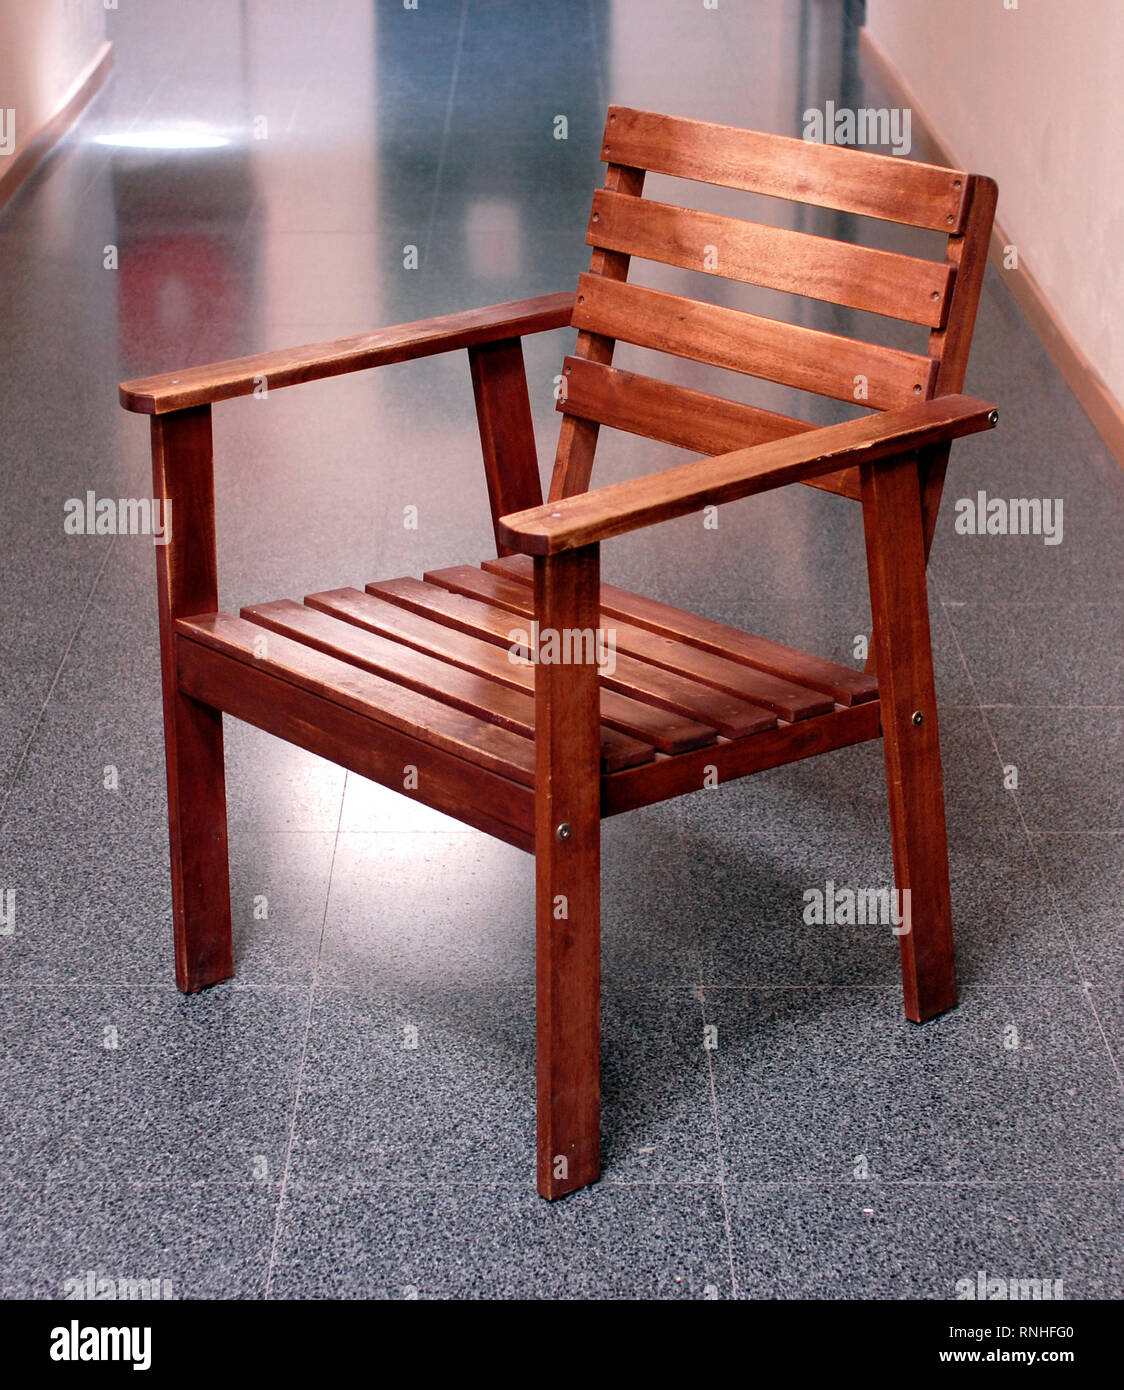 Wooden Chair For Terrace Discontinued From Ikea Stock Photo